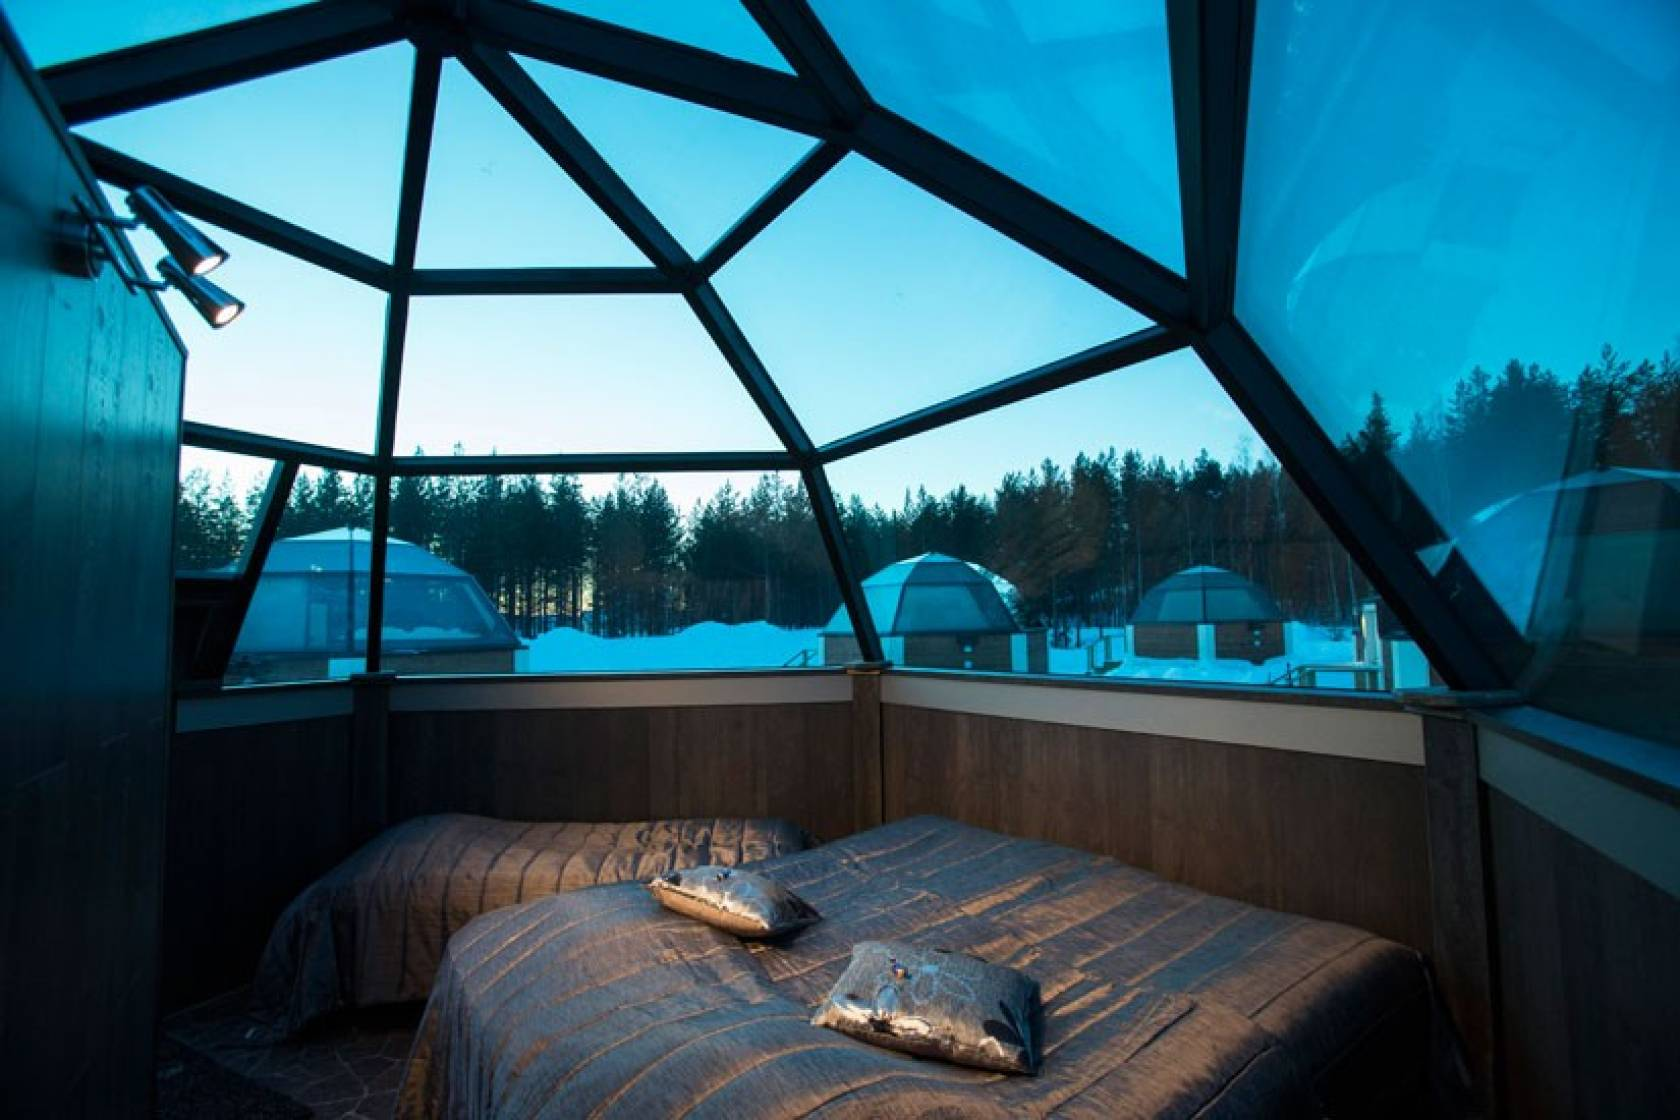 Finland Winter Holidays With Glass Roofs